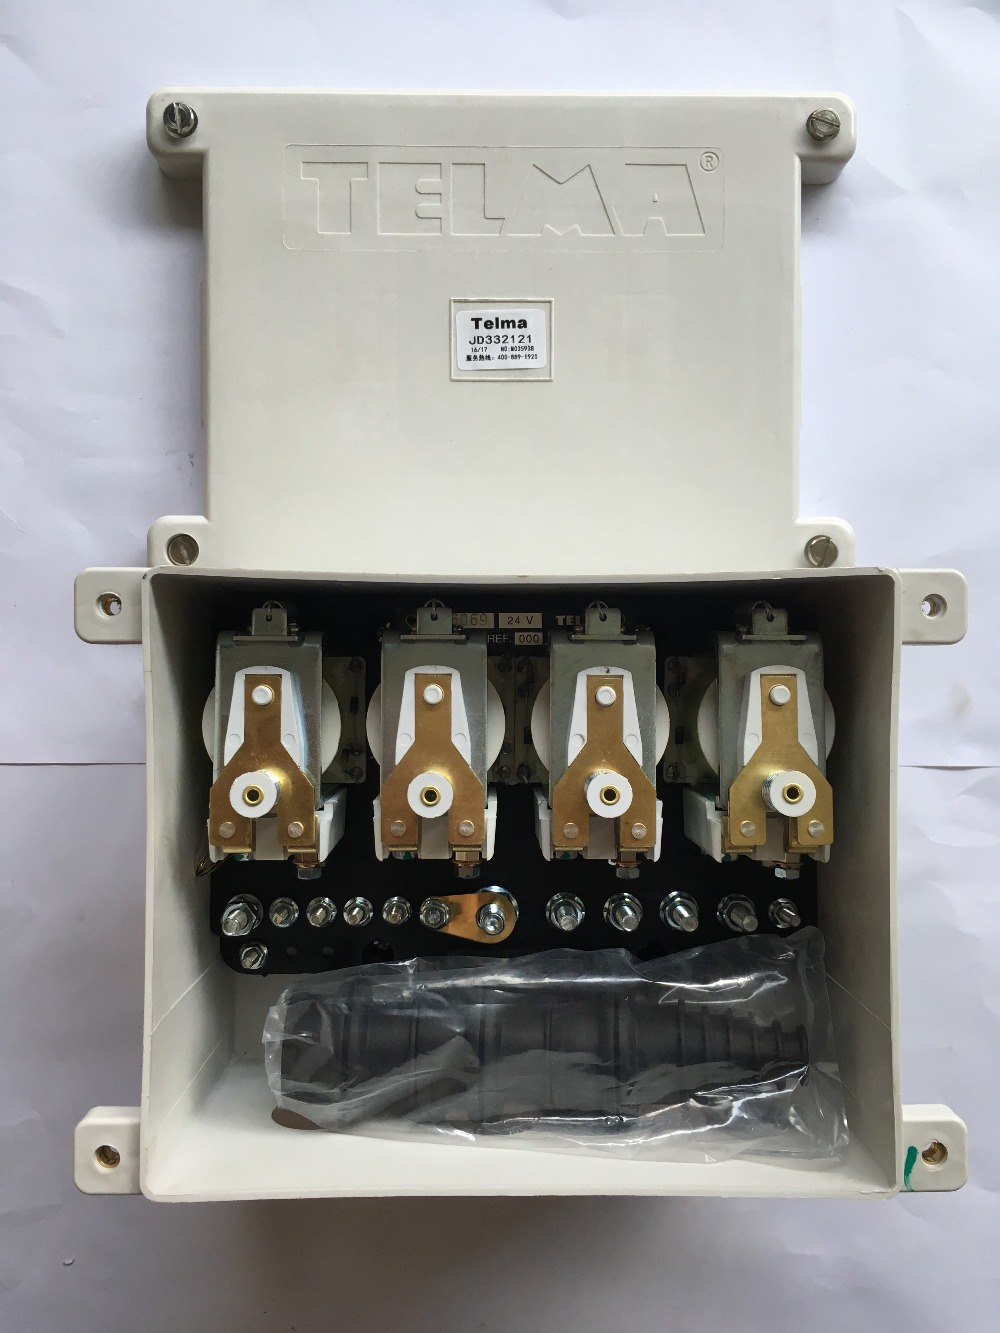 medium resolution of retarder relay jd332121 with four stalls for telma retarder for yutong kinglong zhongtong bus free shipping in sensors switches from automobiles